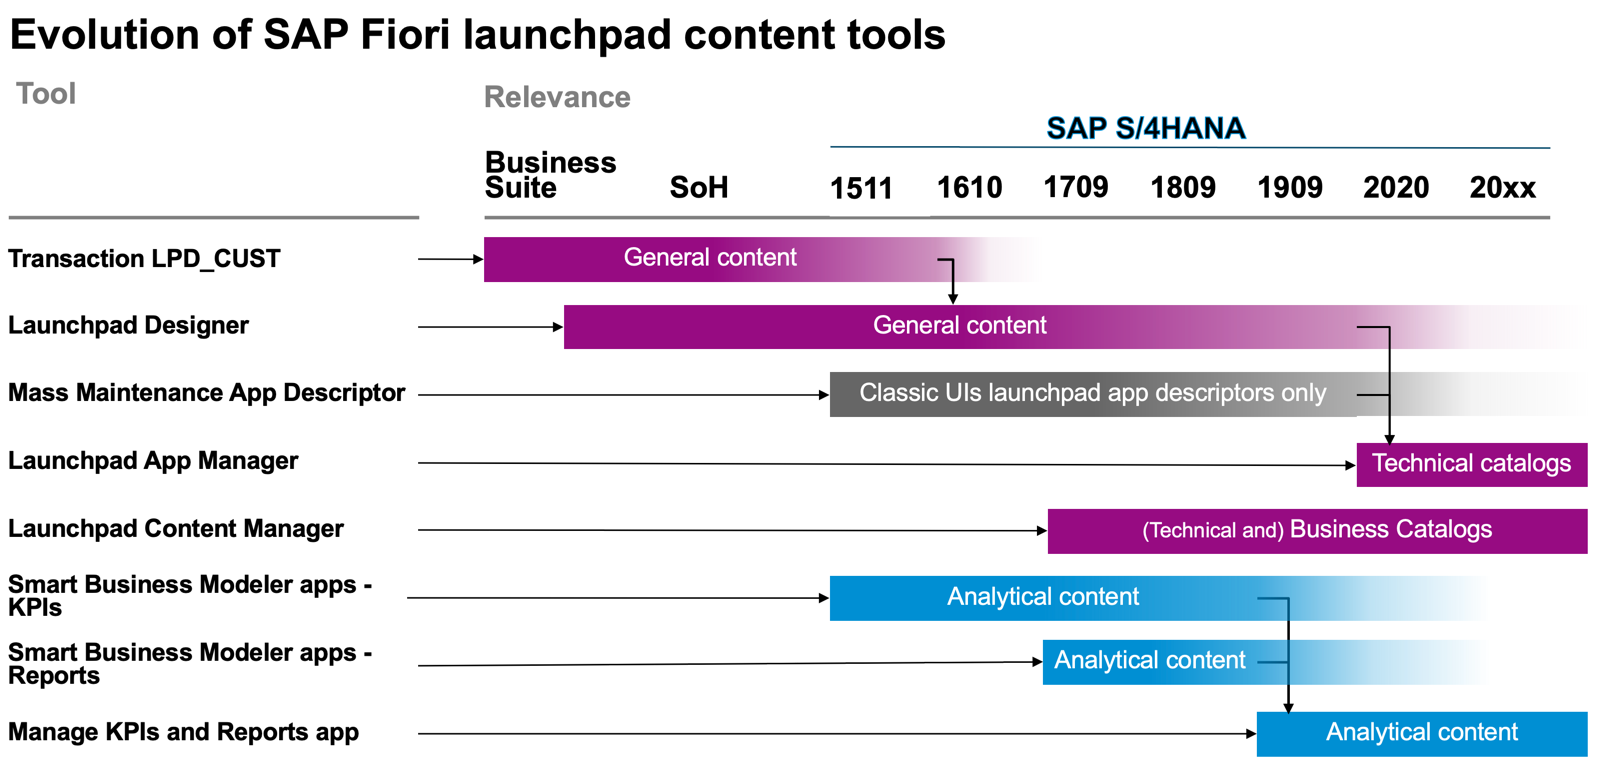 The%20evolution%20of%20launchpad%20content%20tools%20from%20Business%20Suite%20to%20SAP%20S/4HANA%202020%20and%20beyond